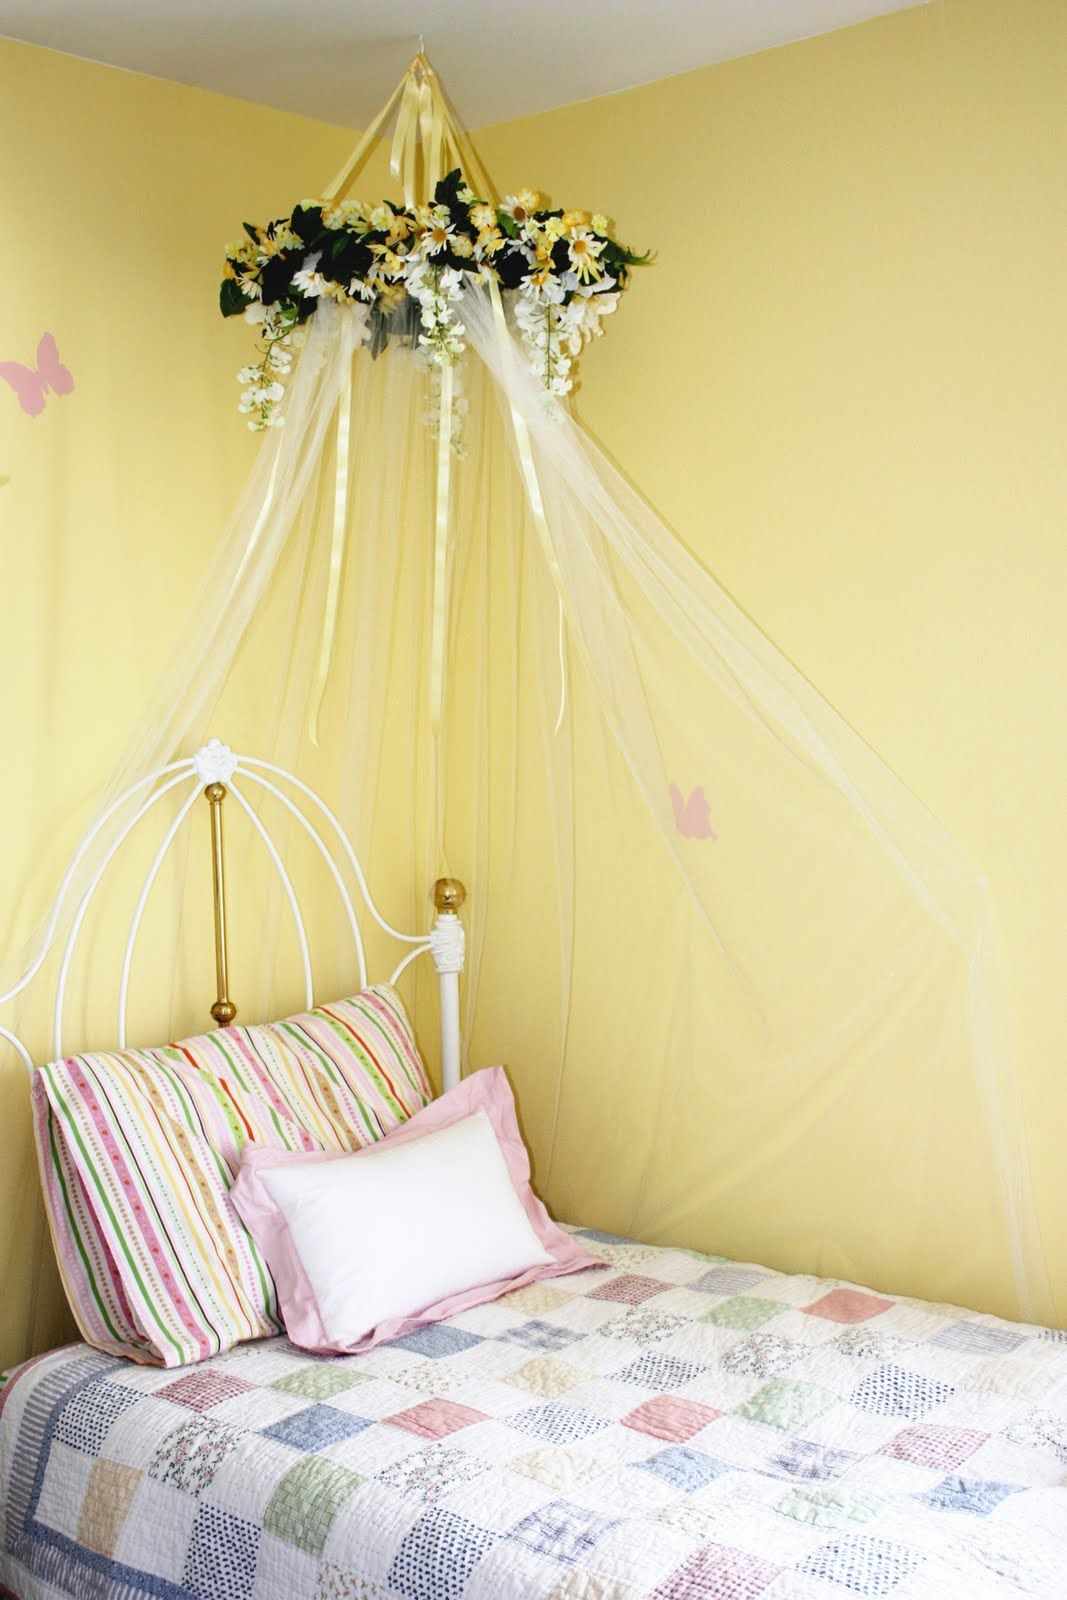 diy over the bed canopy - Google Search | Canopies and crafts ...